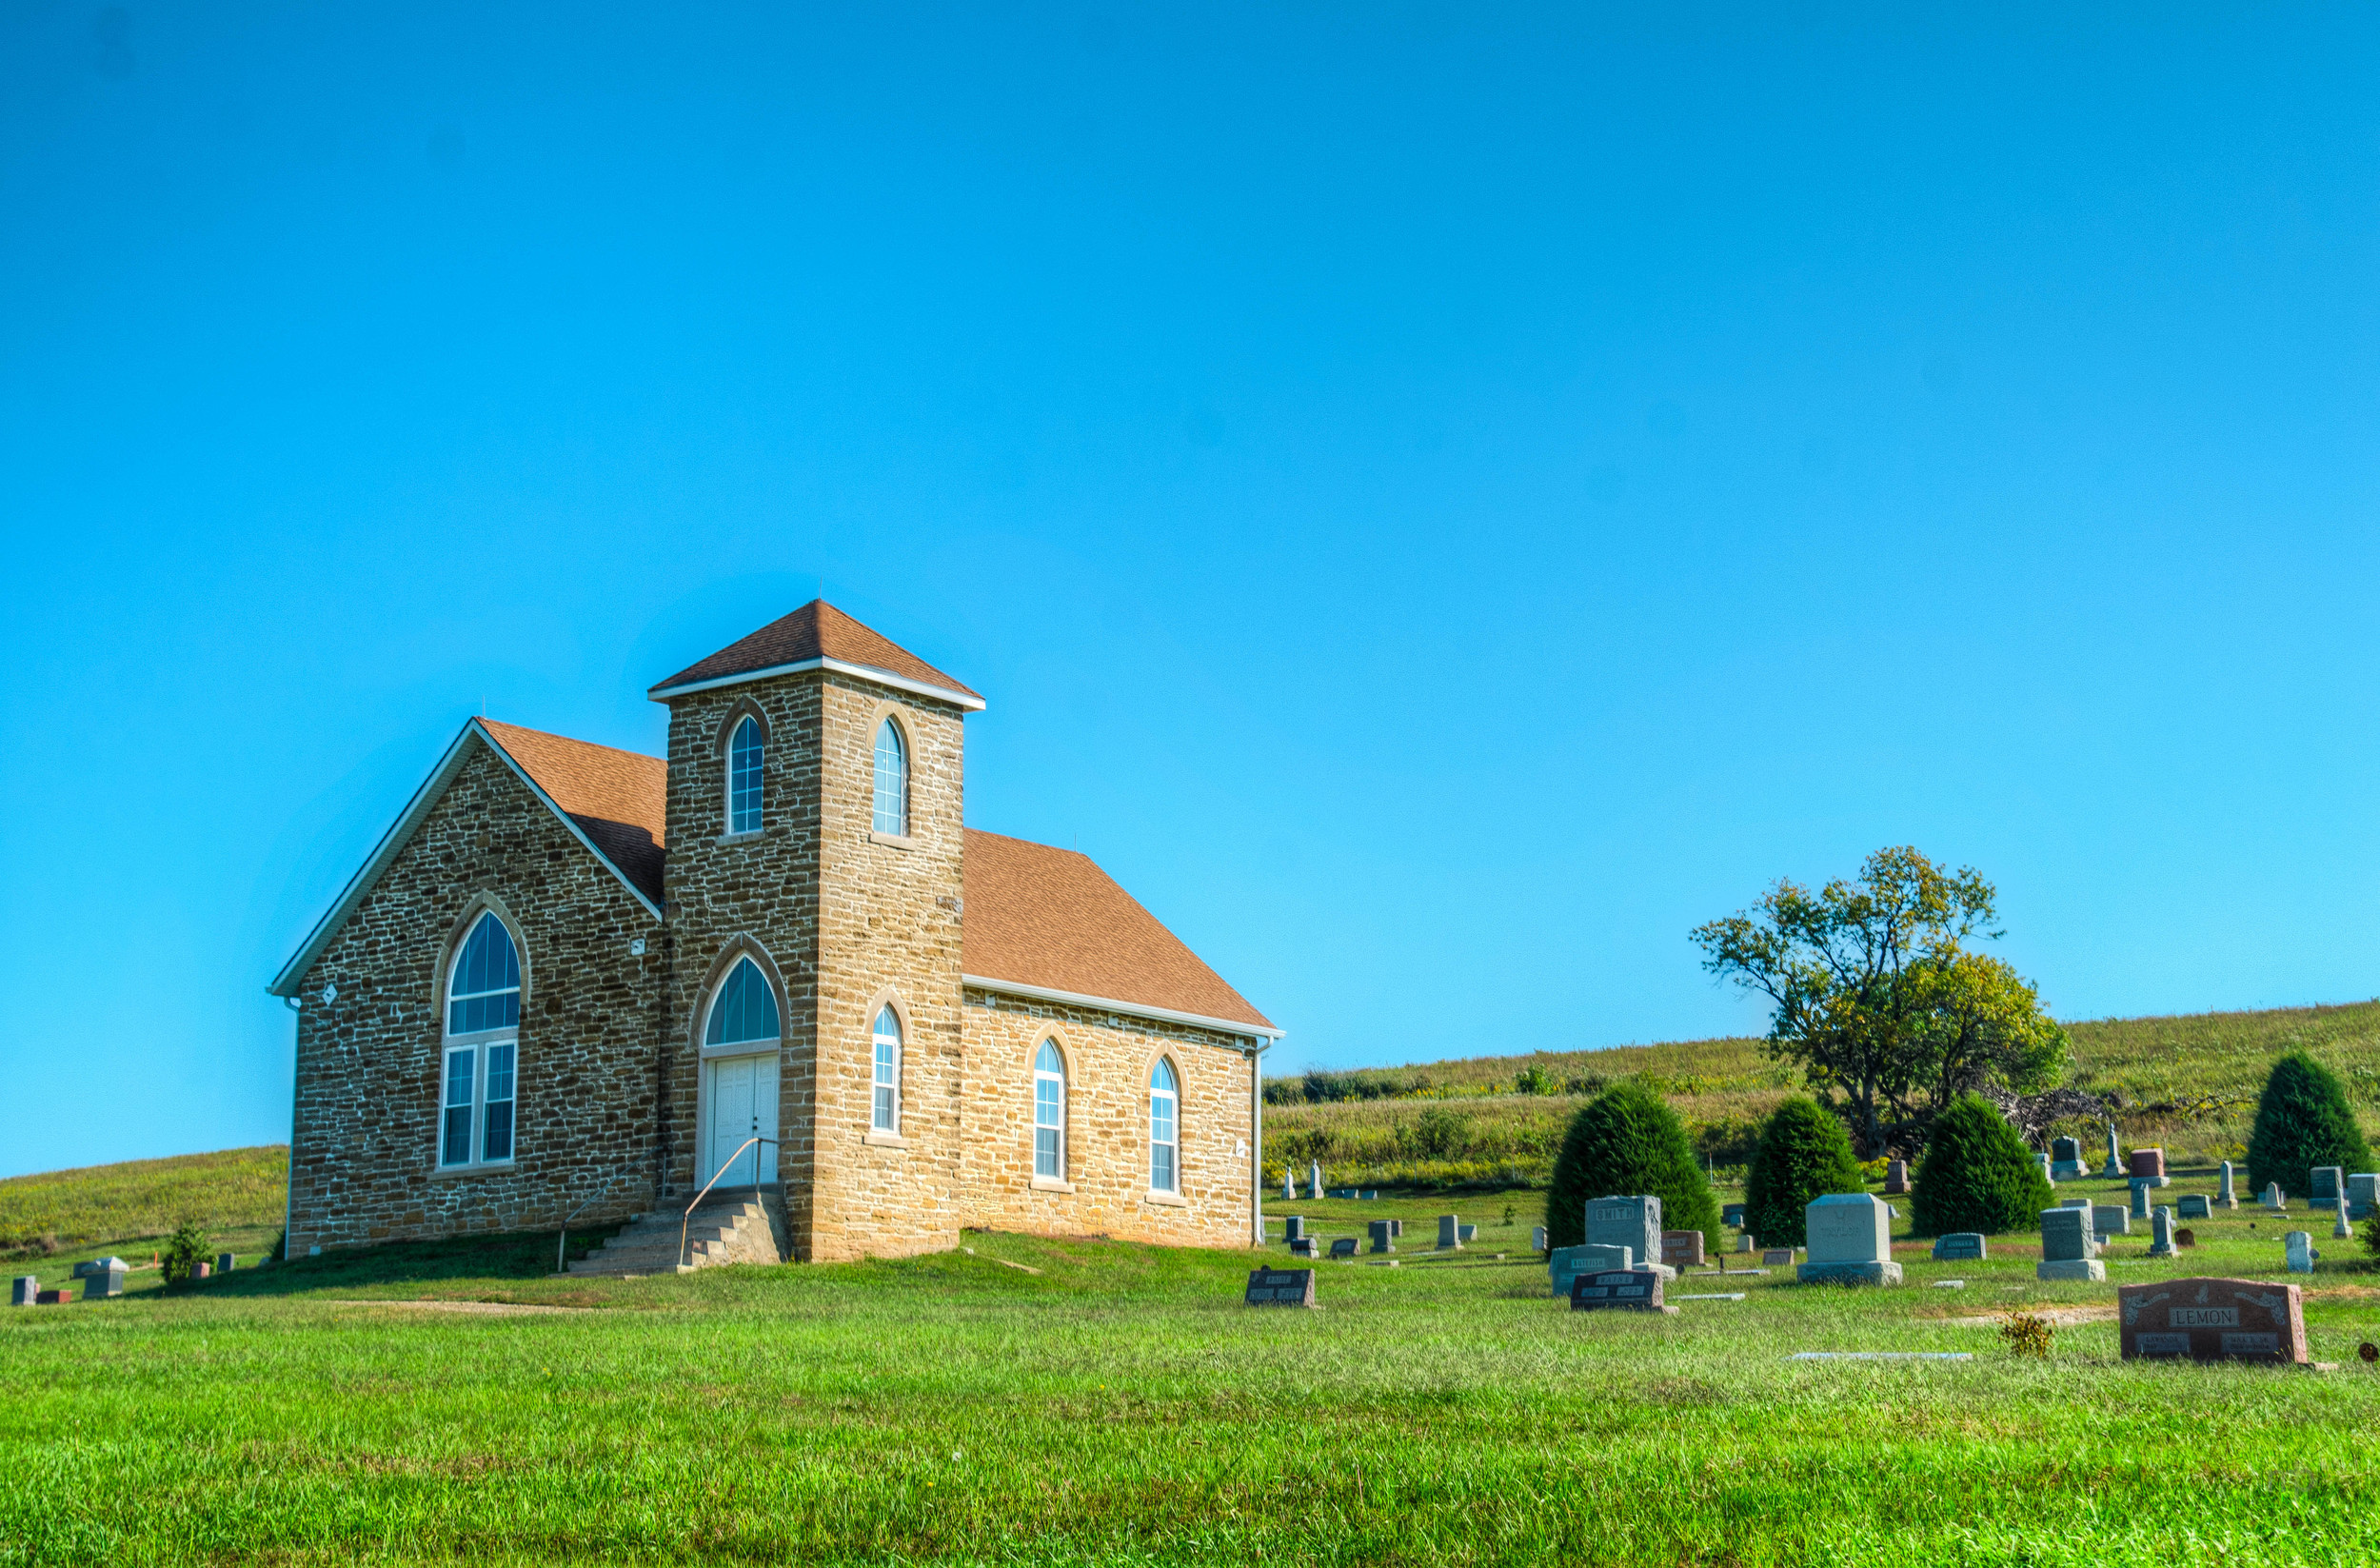 The Old Stone Church. Near Maple Hill, KS. Three shot HDR, edited with Photomatix Pro and LR5